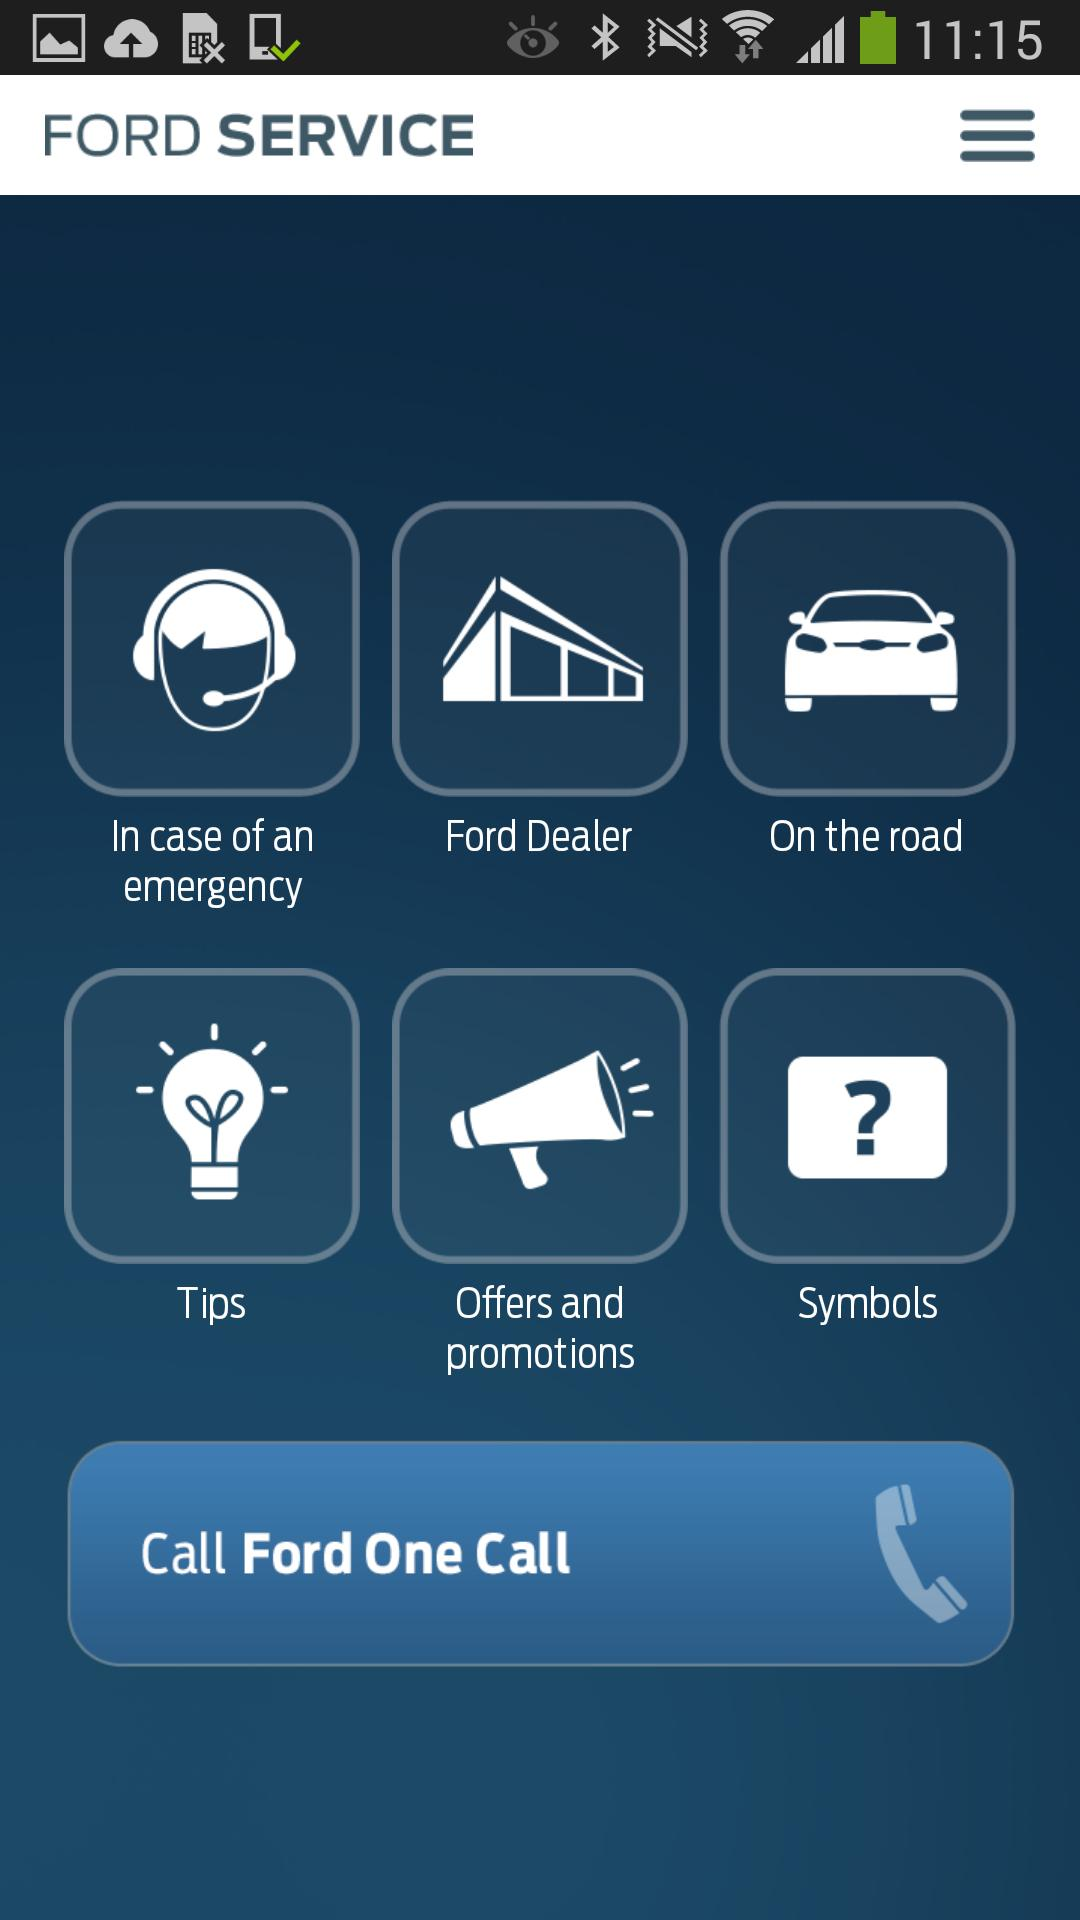 Ford Service for Android - APK Download